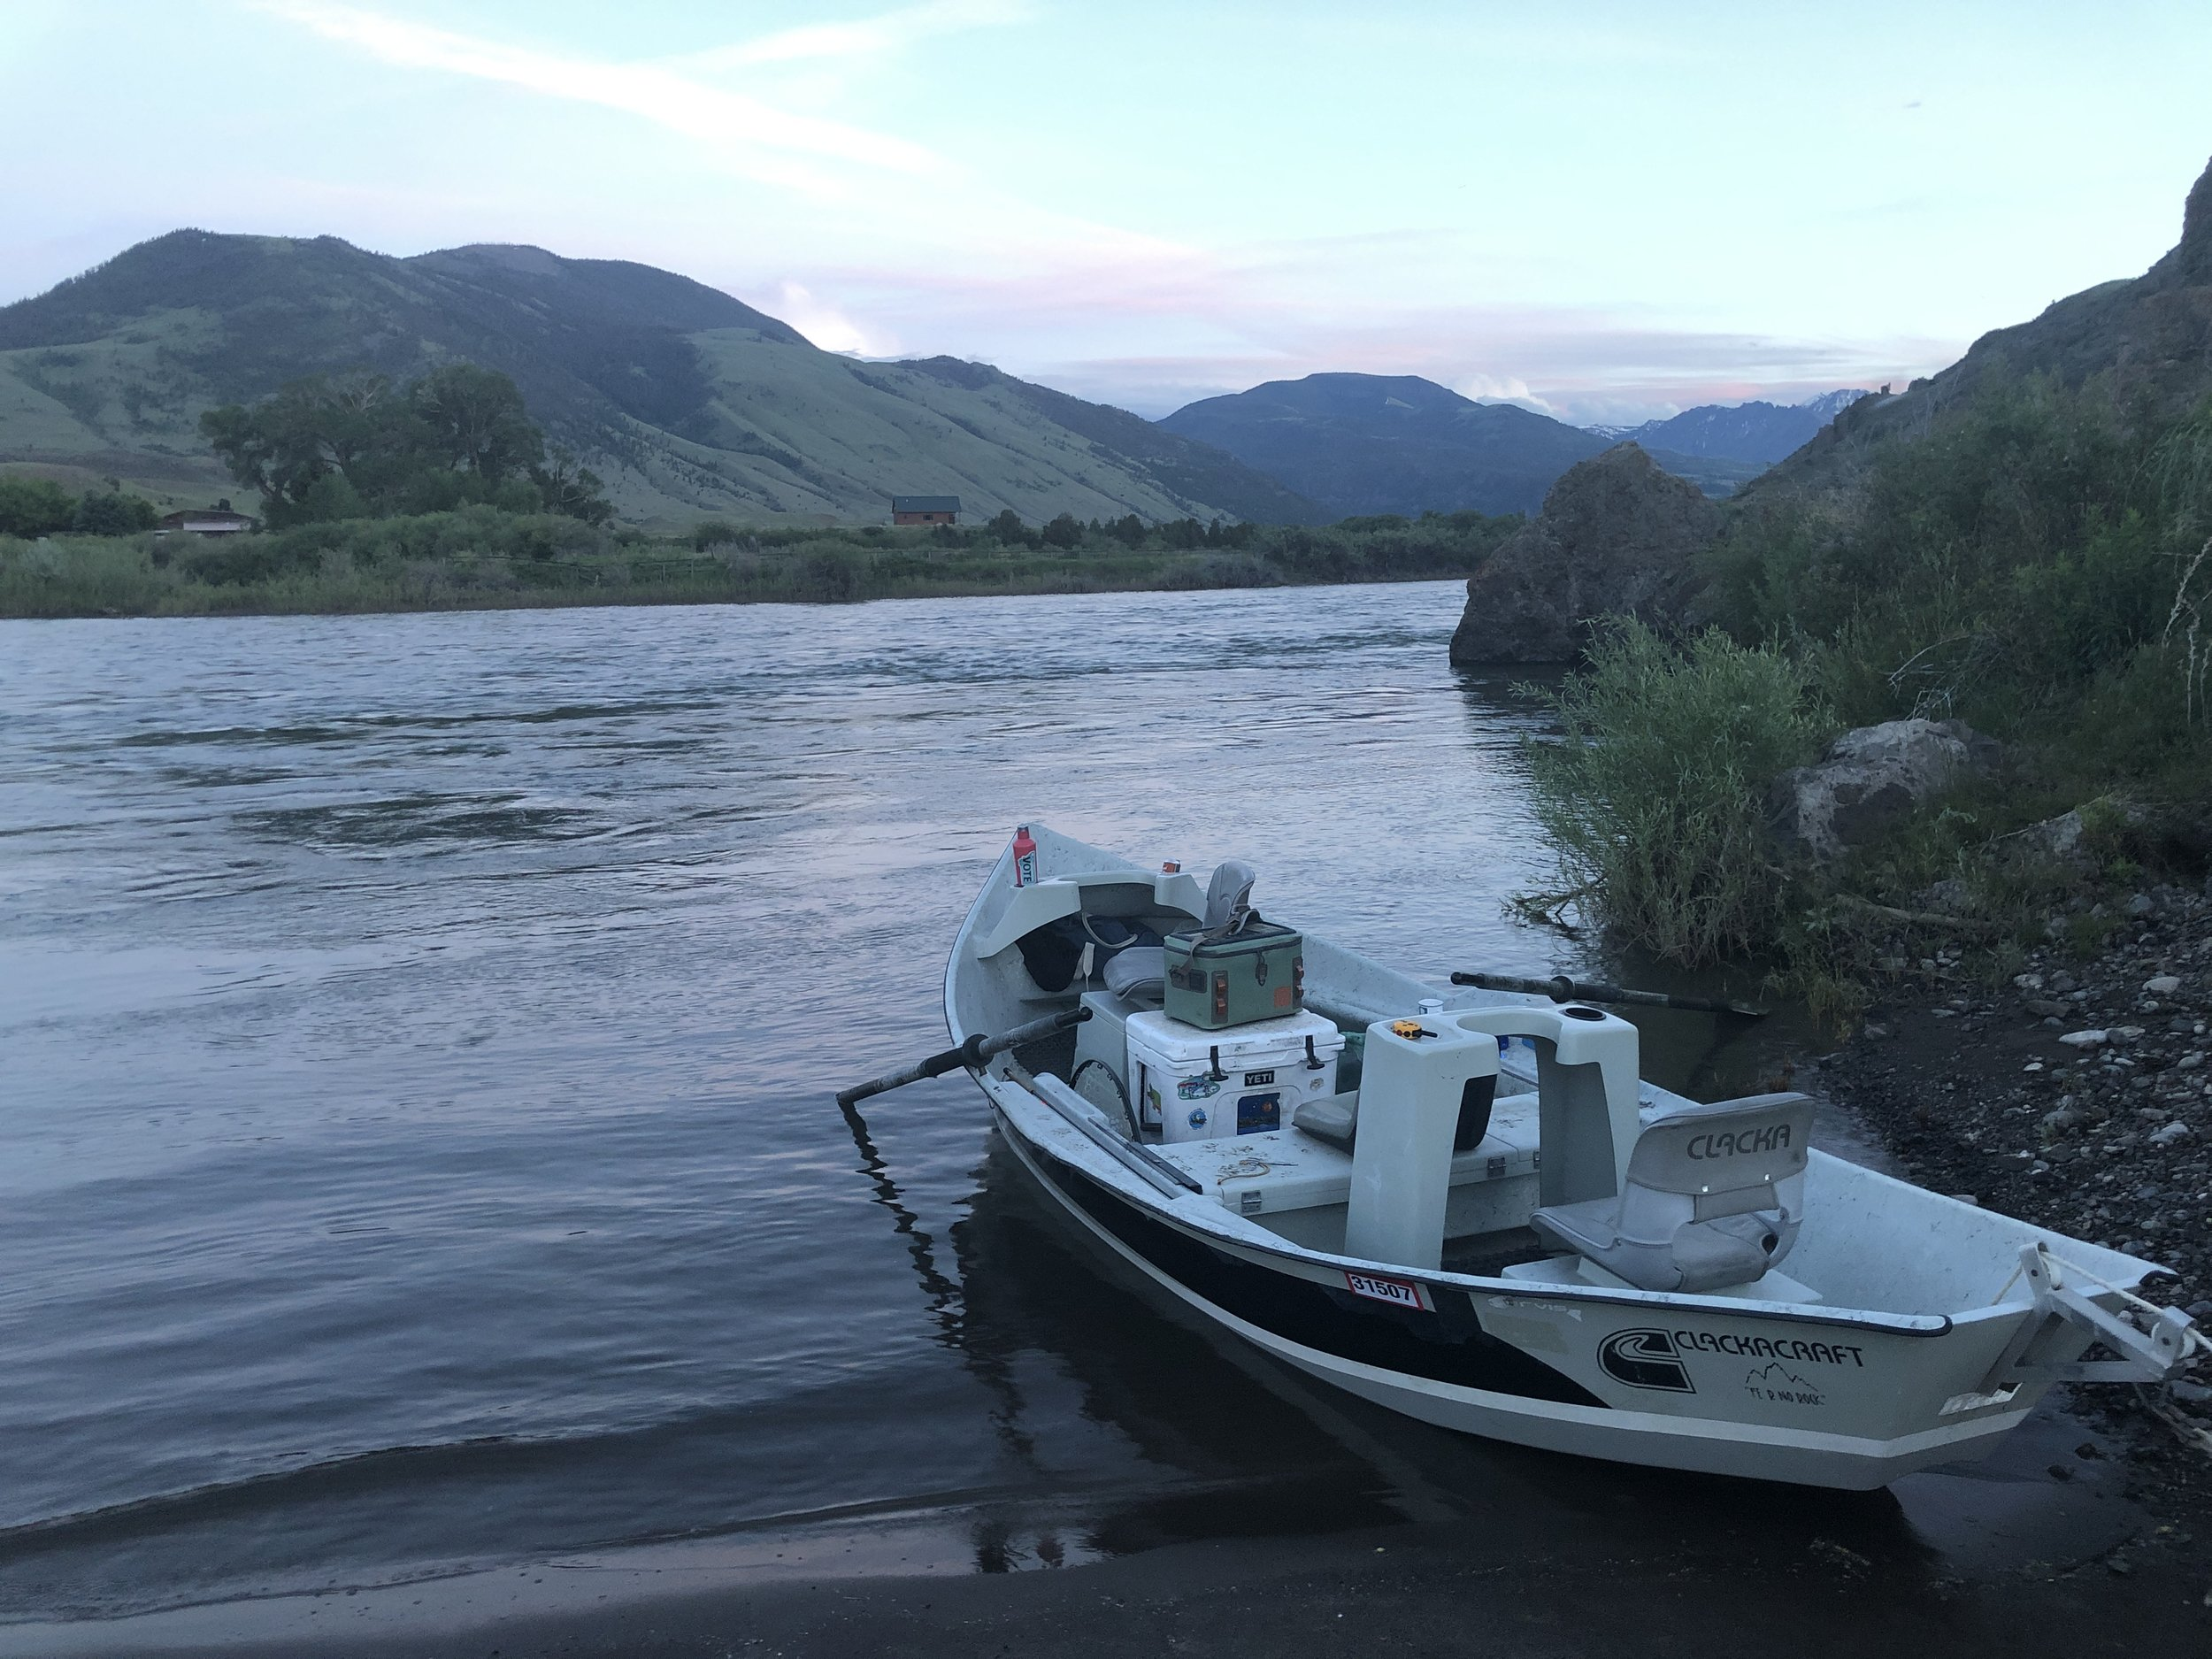 Drift boat trip on the Yellowstone River!